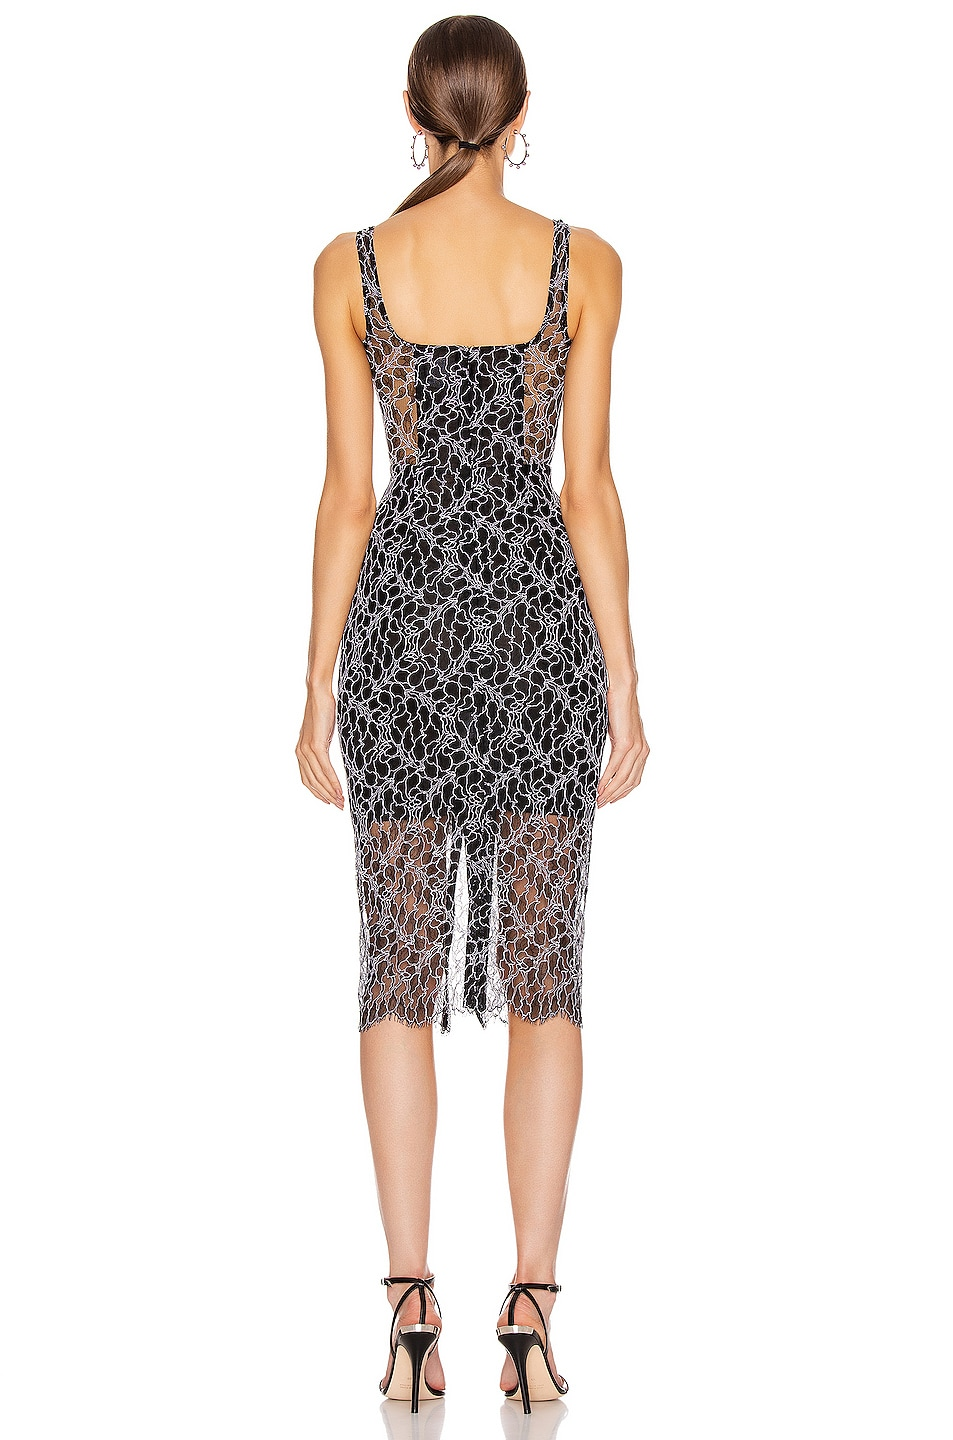 Image 3 of Dion Lee Vein Lace Corset Dress in Black & White